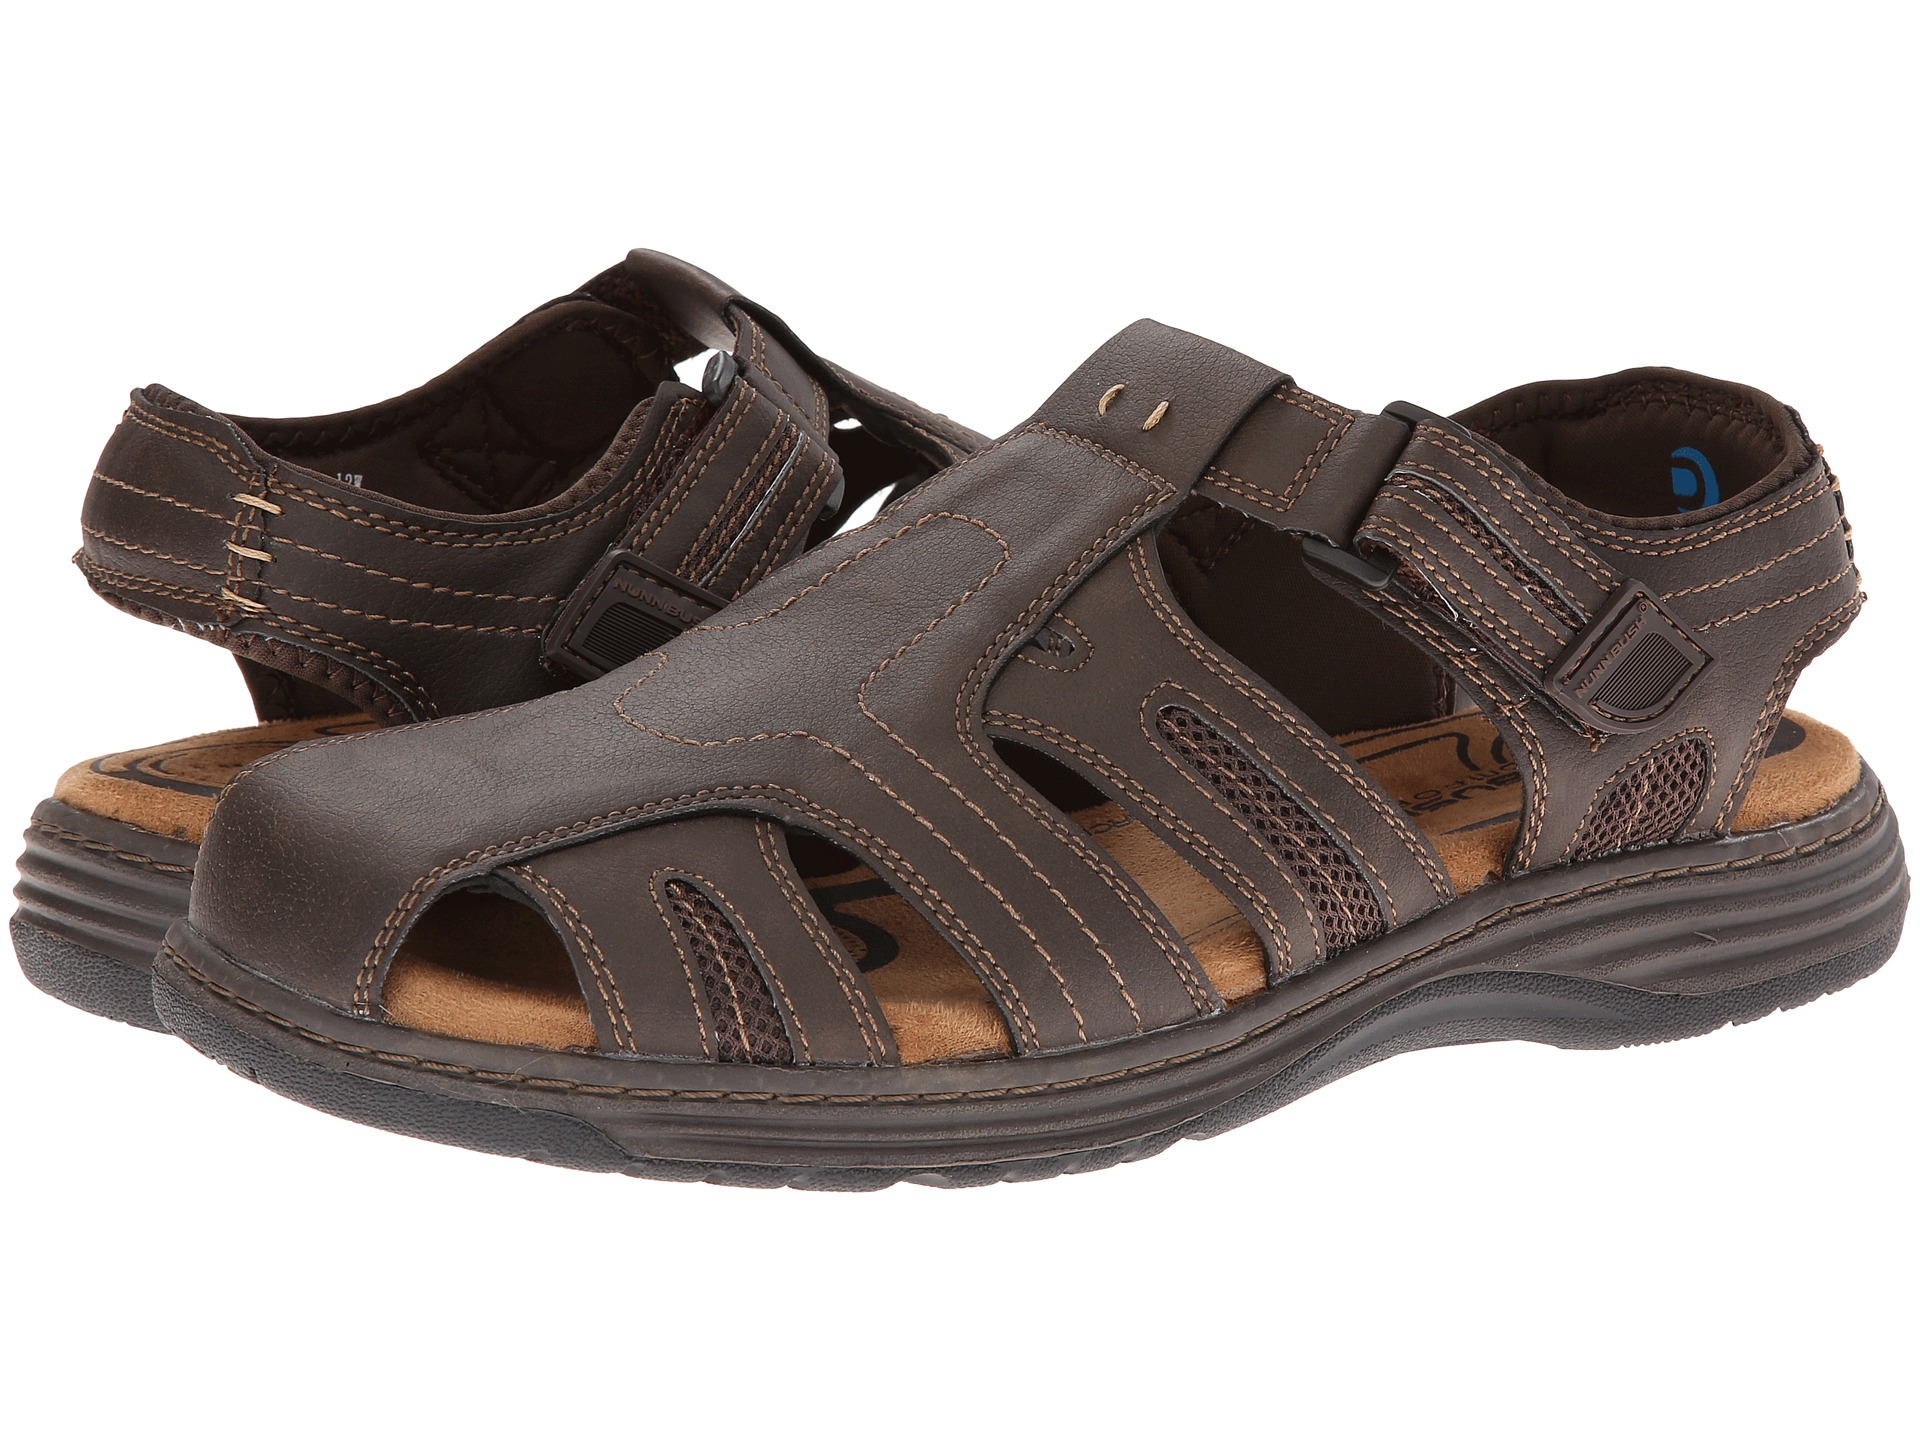 Slip on a pair of men's sandals from Sears instead. We have comfortable sandals for men in styles ranging from sleek athletic-style sandals to traditional leather-strapped looks. If you're just stepping outside for a bit, it's nice to have a pair of shoes that you can slip on with ease.